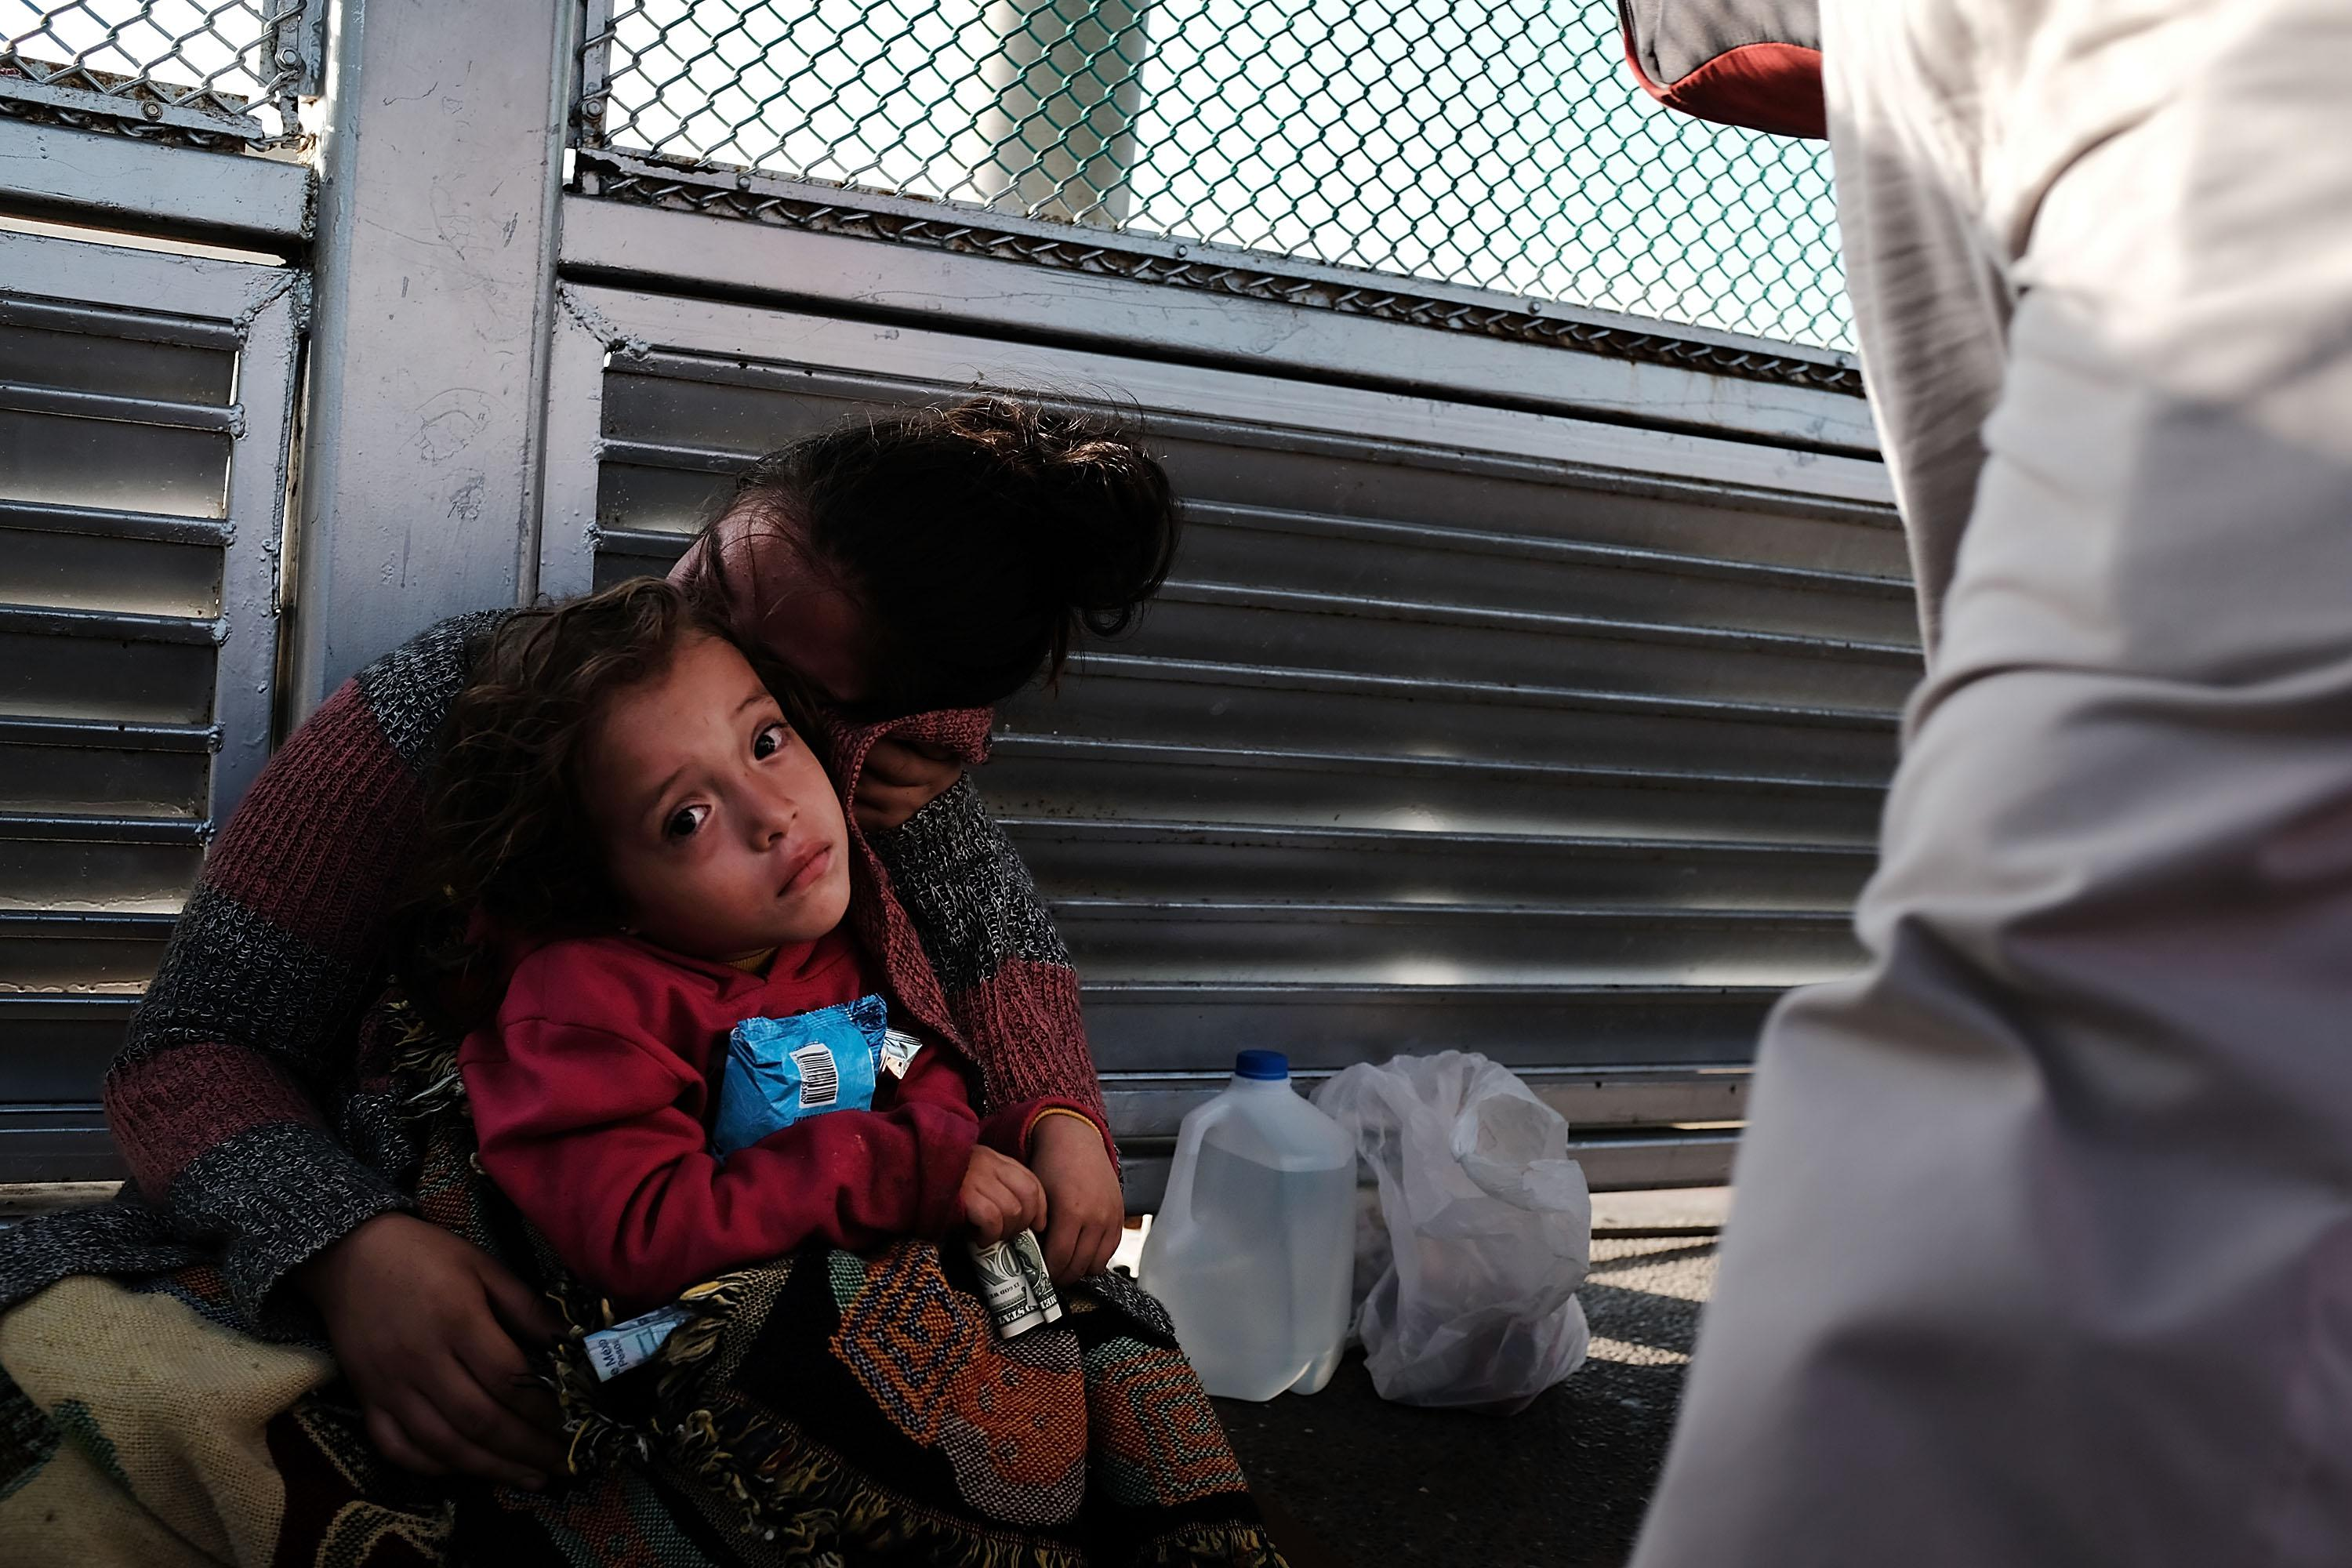 A Honduran child and her mother wait along the border bridge after being denied entry from Mexico into the U.S.